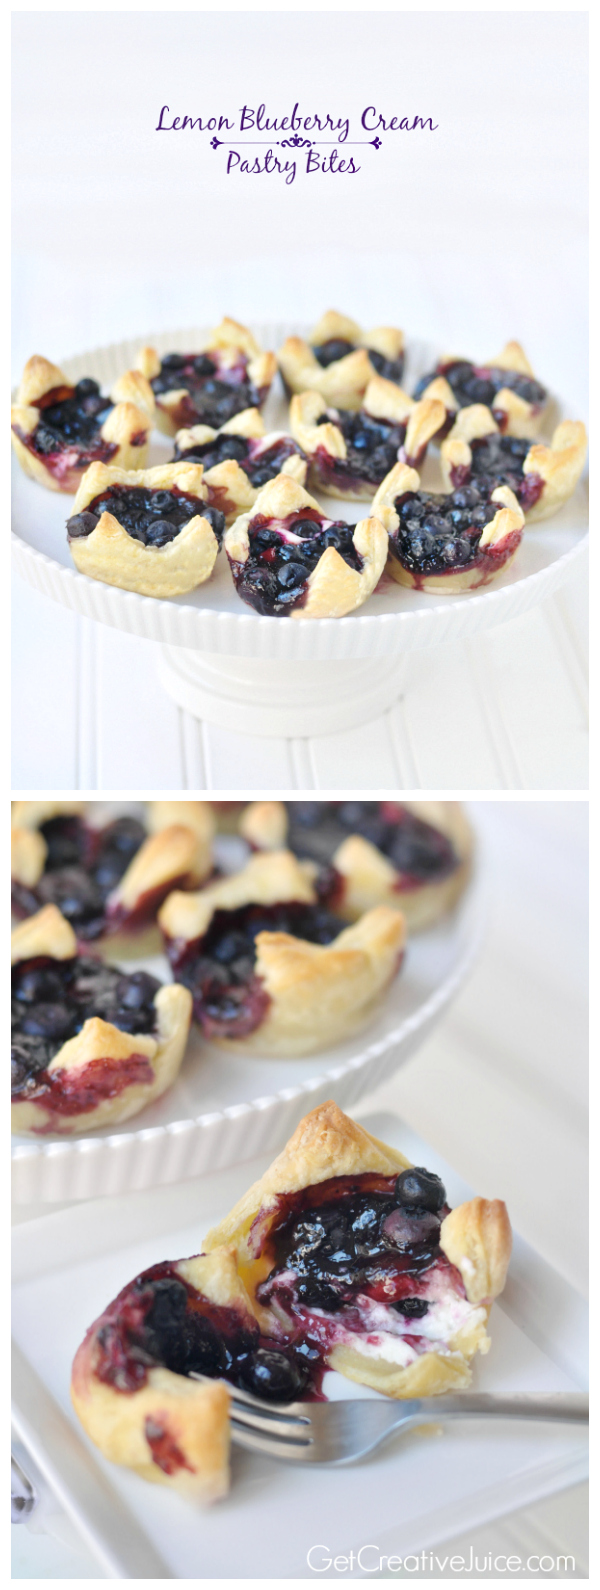 Lemon Blueberry Cheesecake Pastry Bites - Recipe and Tutorial